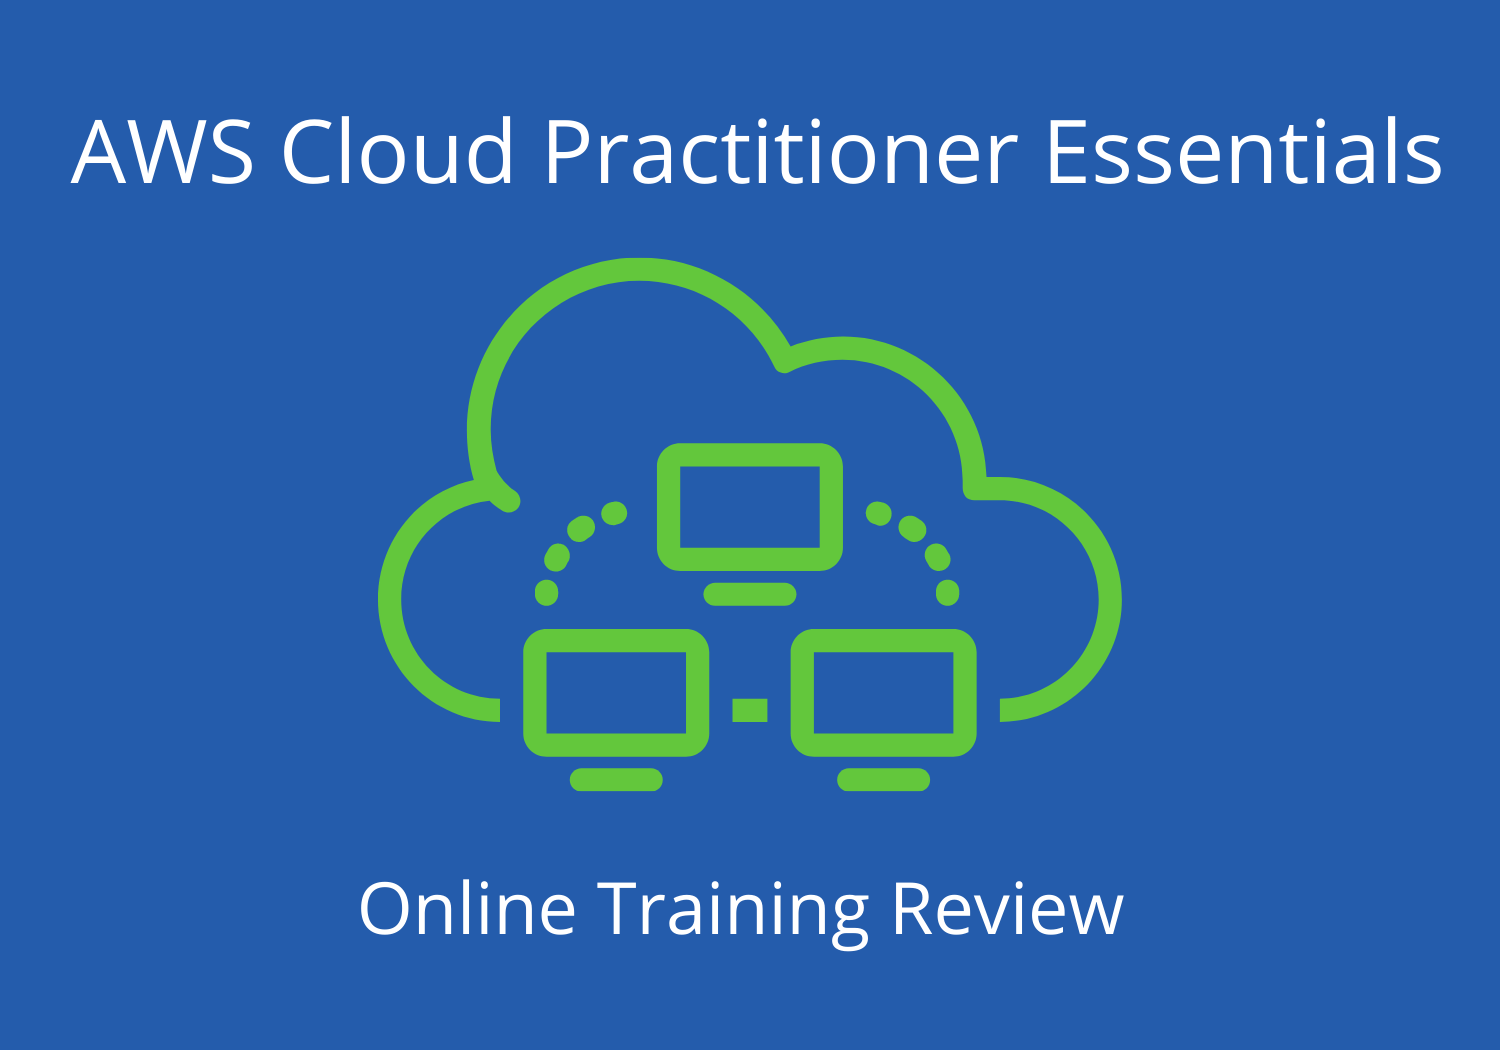 AWS Cloud Practitioner Essentials Course Review